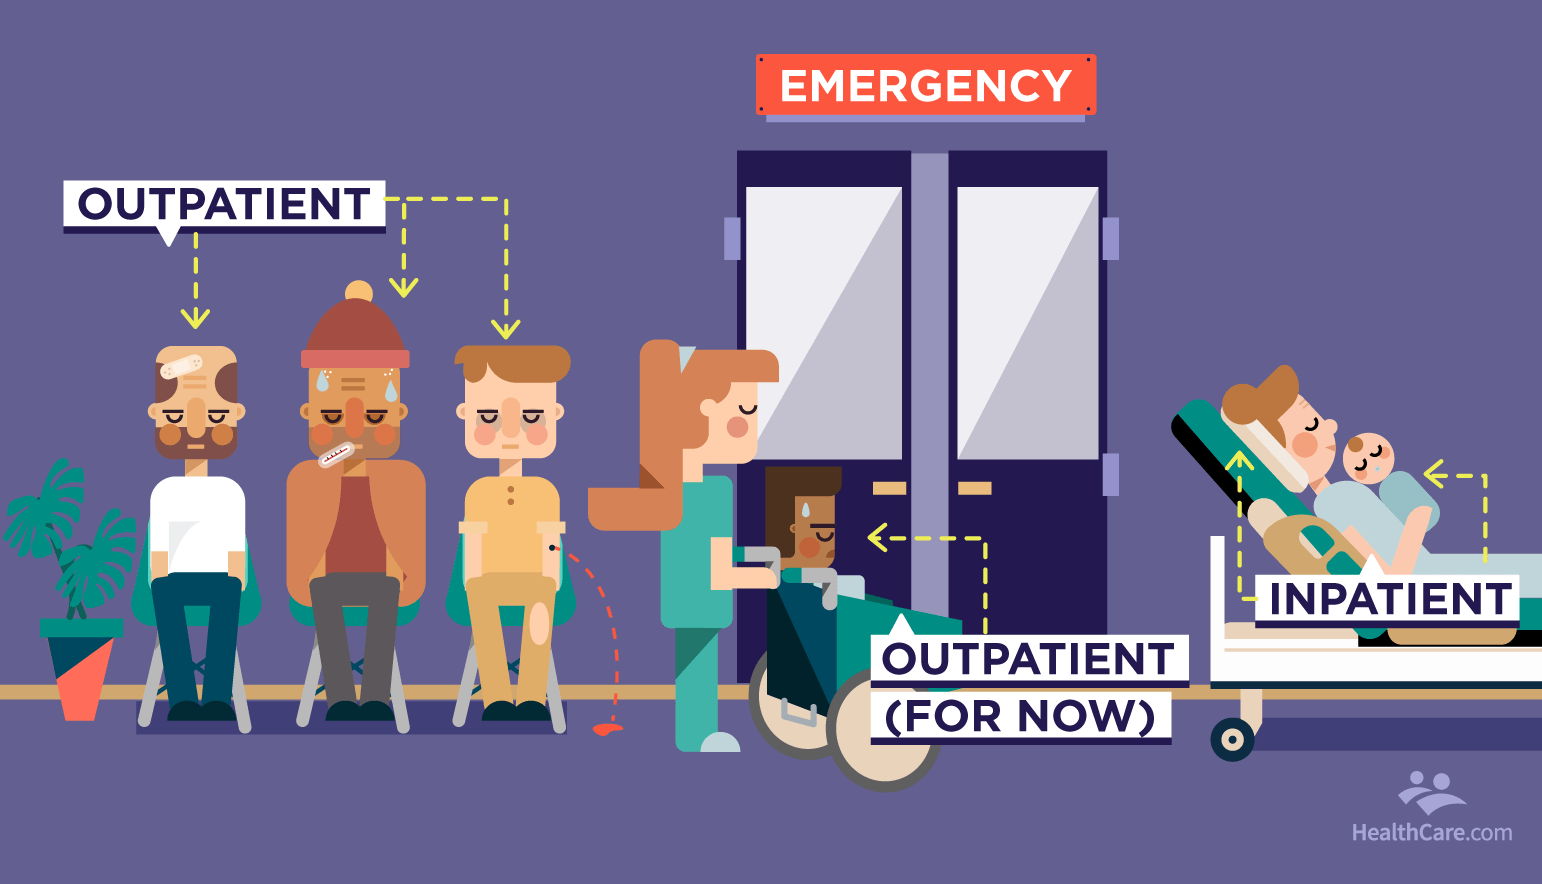 inpatient vs outpatients in waiting room